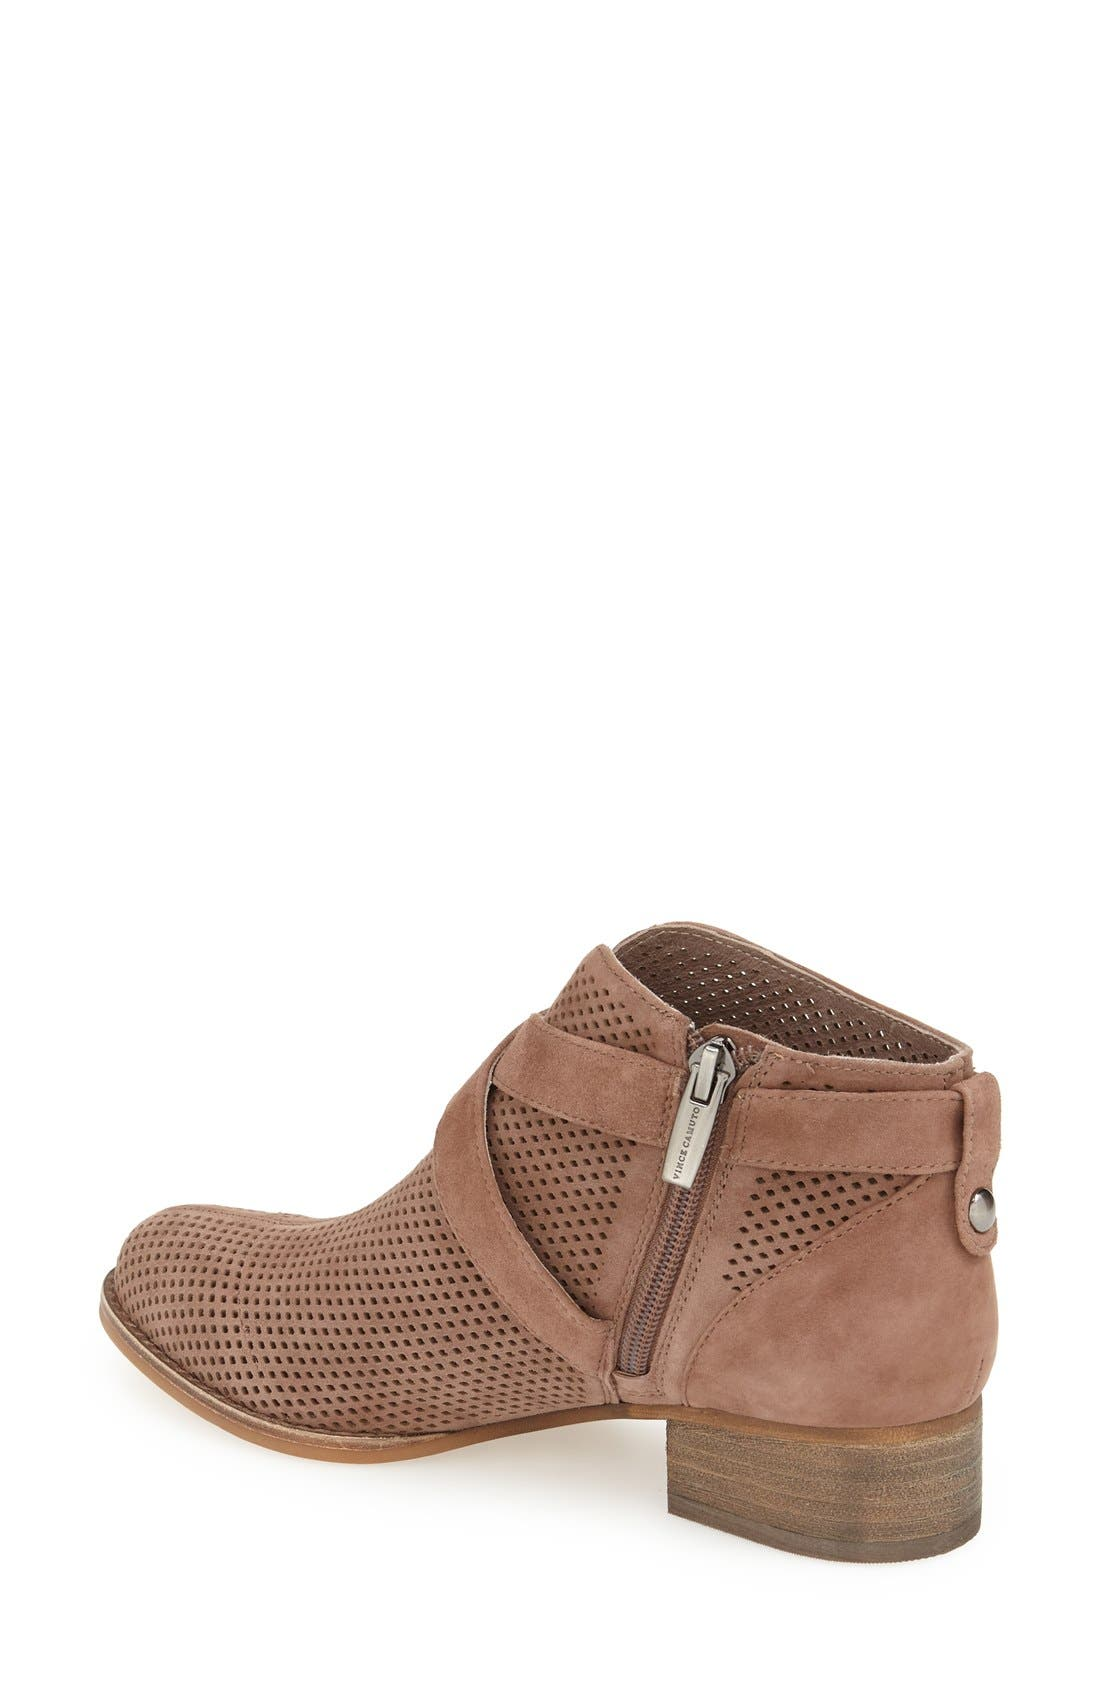 Alternate Image 2  - Vince Camuto 'Casha' Perforated Bootie (Women)